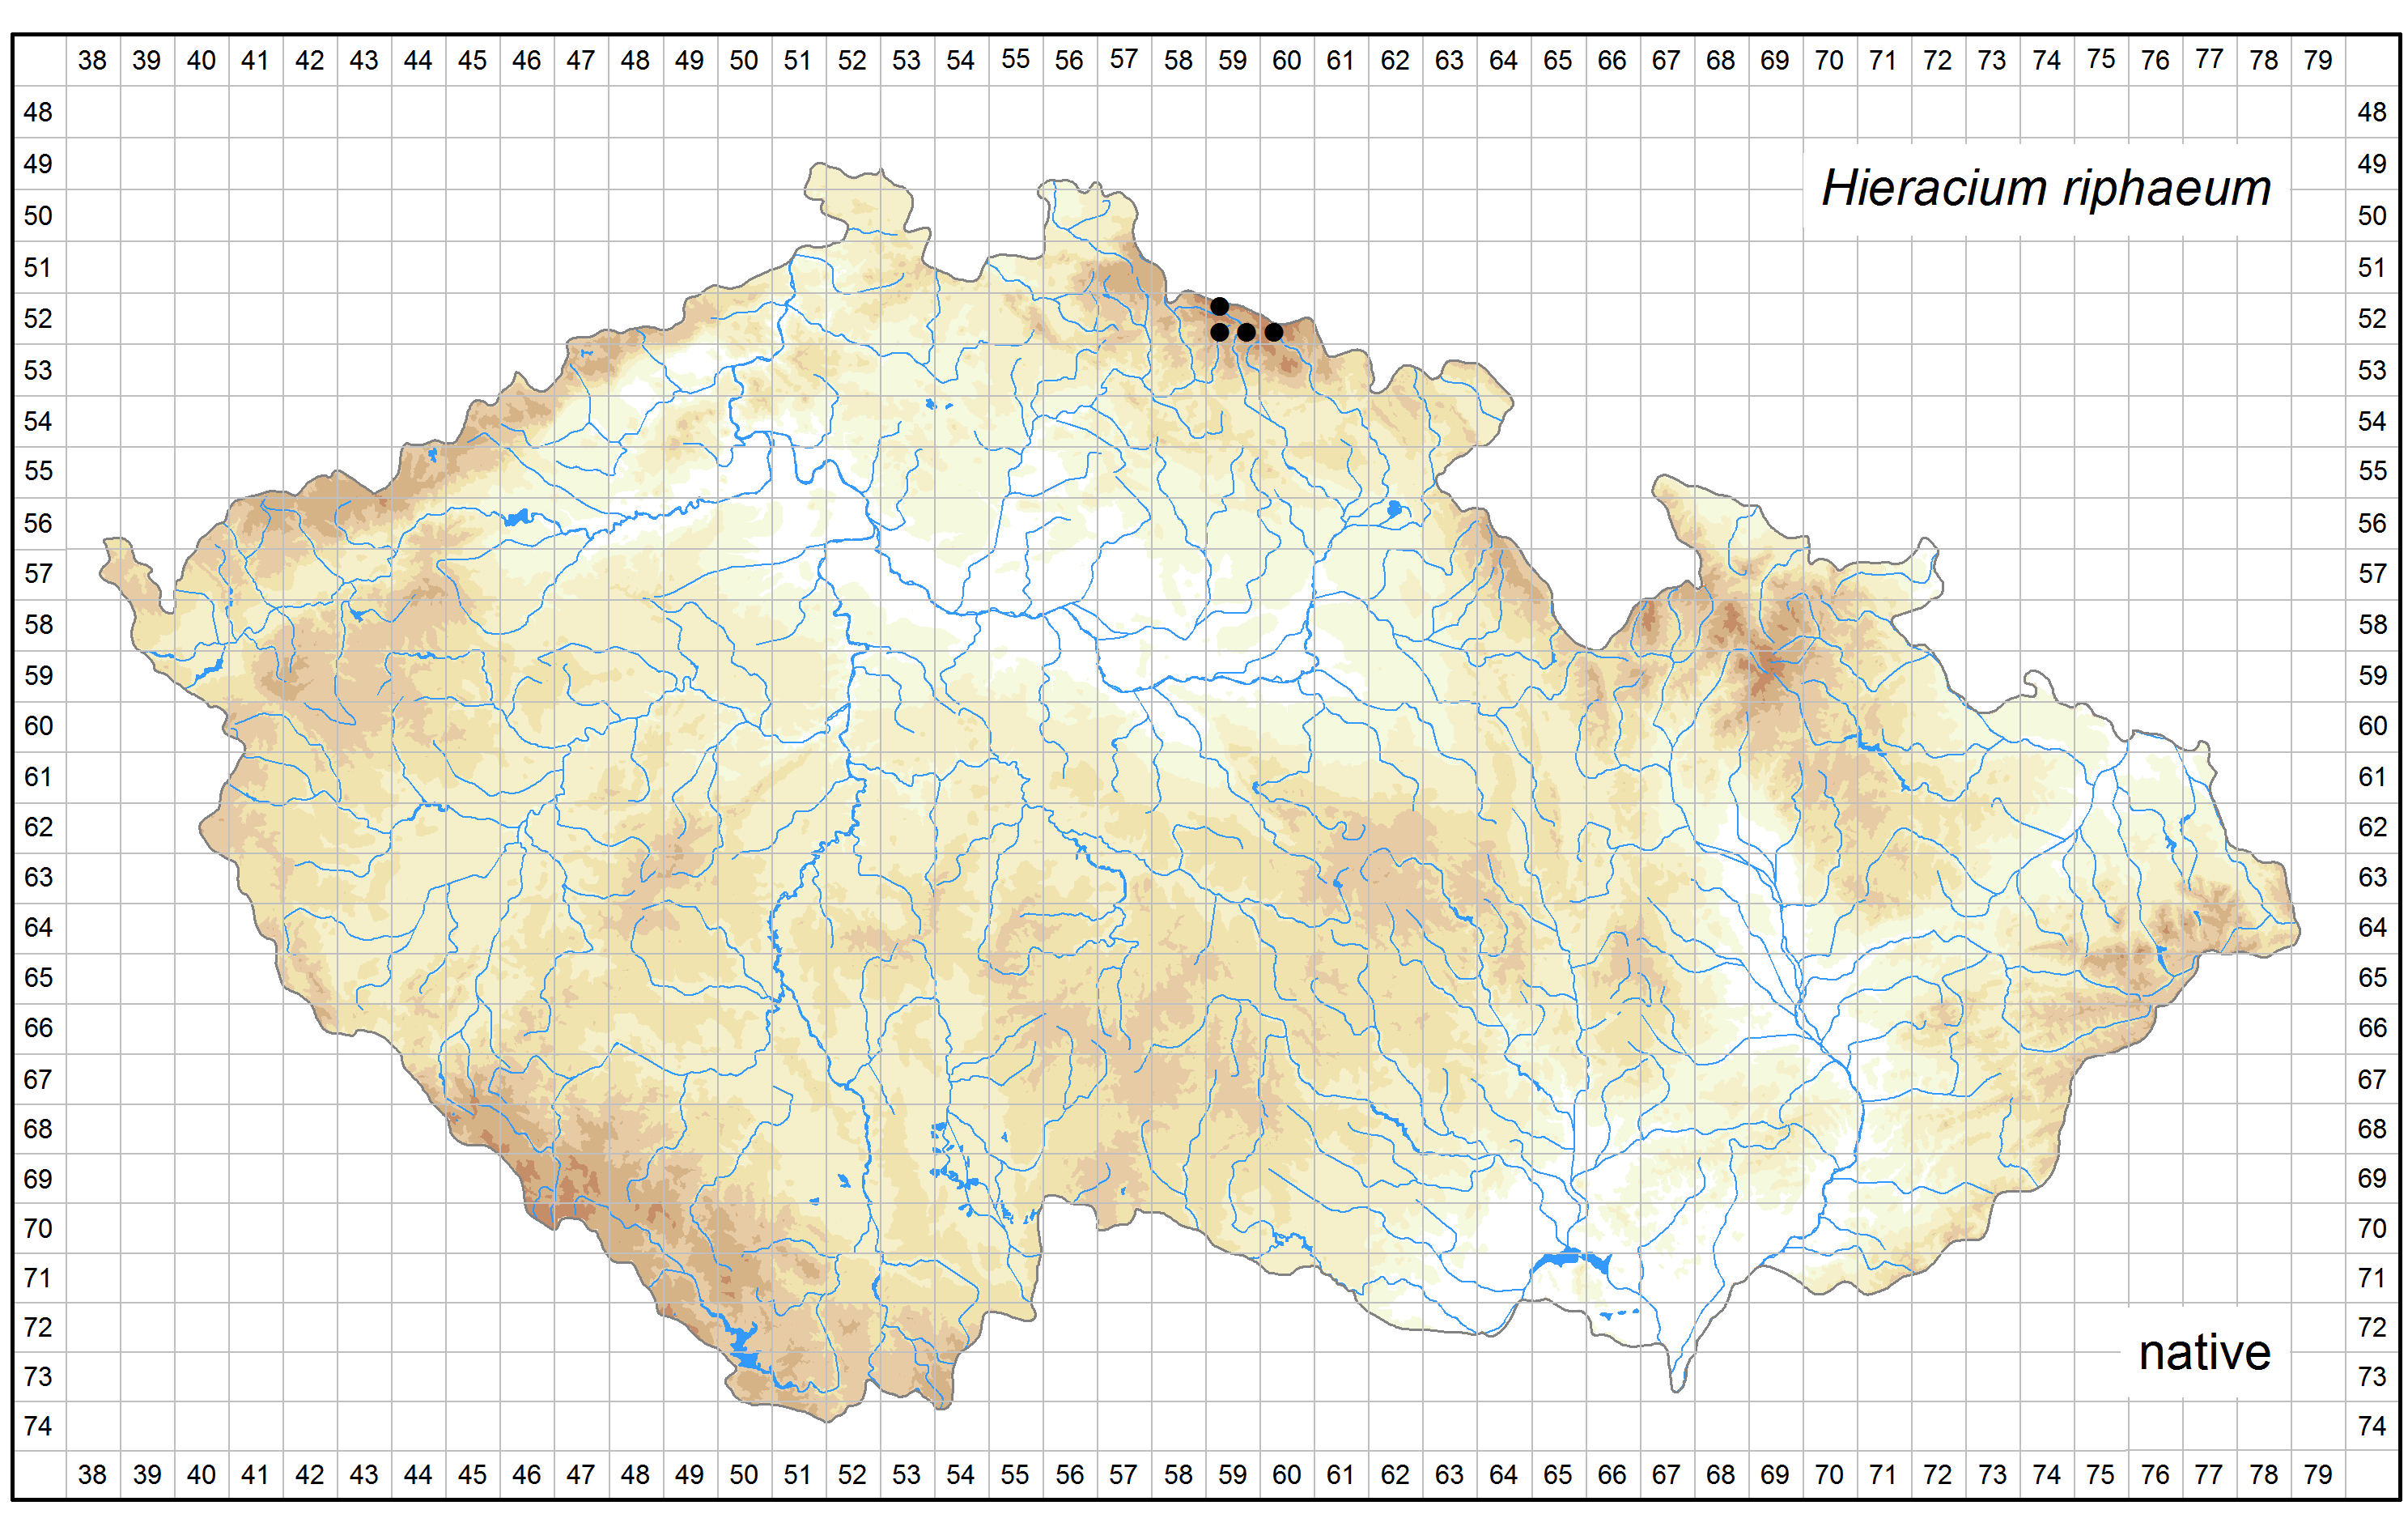 Distribution of Hieracium riphaeum in the Czech Republic Author of the map: Jindřich Chrtek Map produced on: 11-11-2016 Database records used for producing the distribution map of Hieracium riphaeum